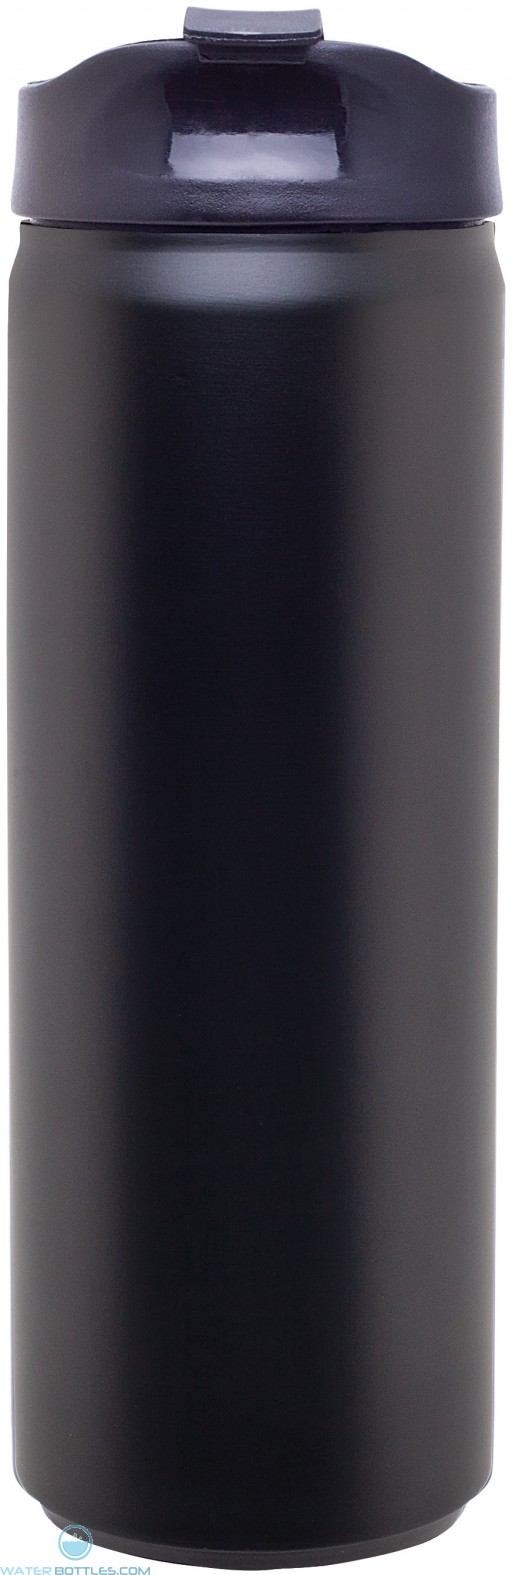 Stainless Steel Thermal Can   16 oz - Matte Black